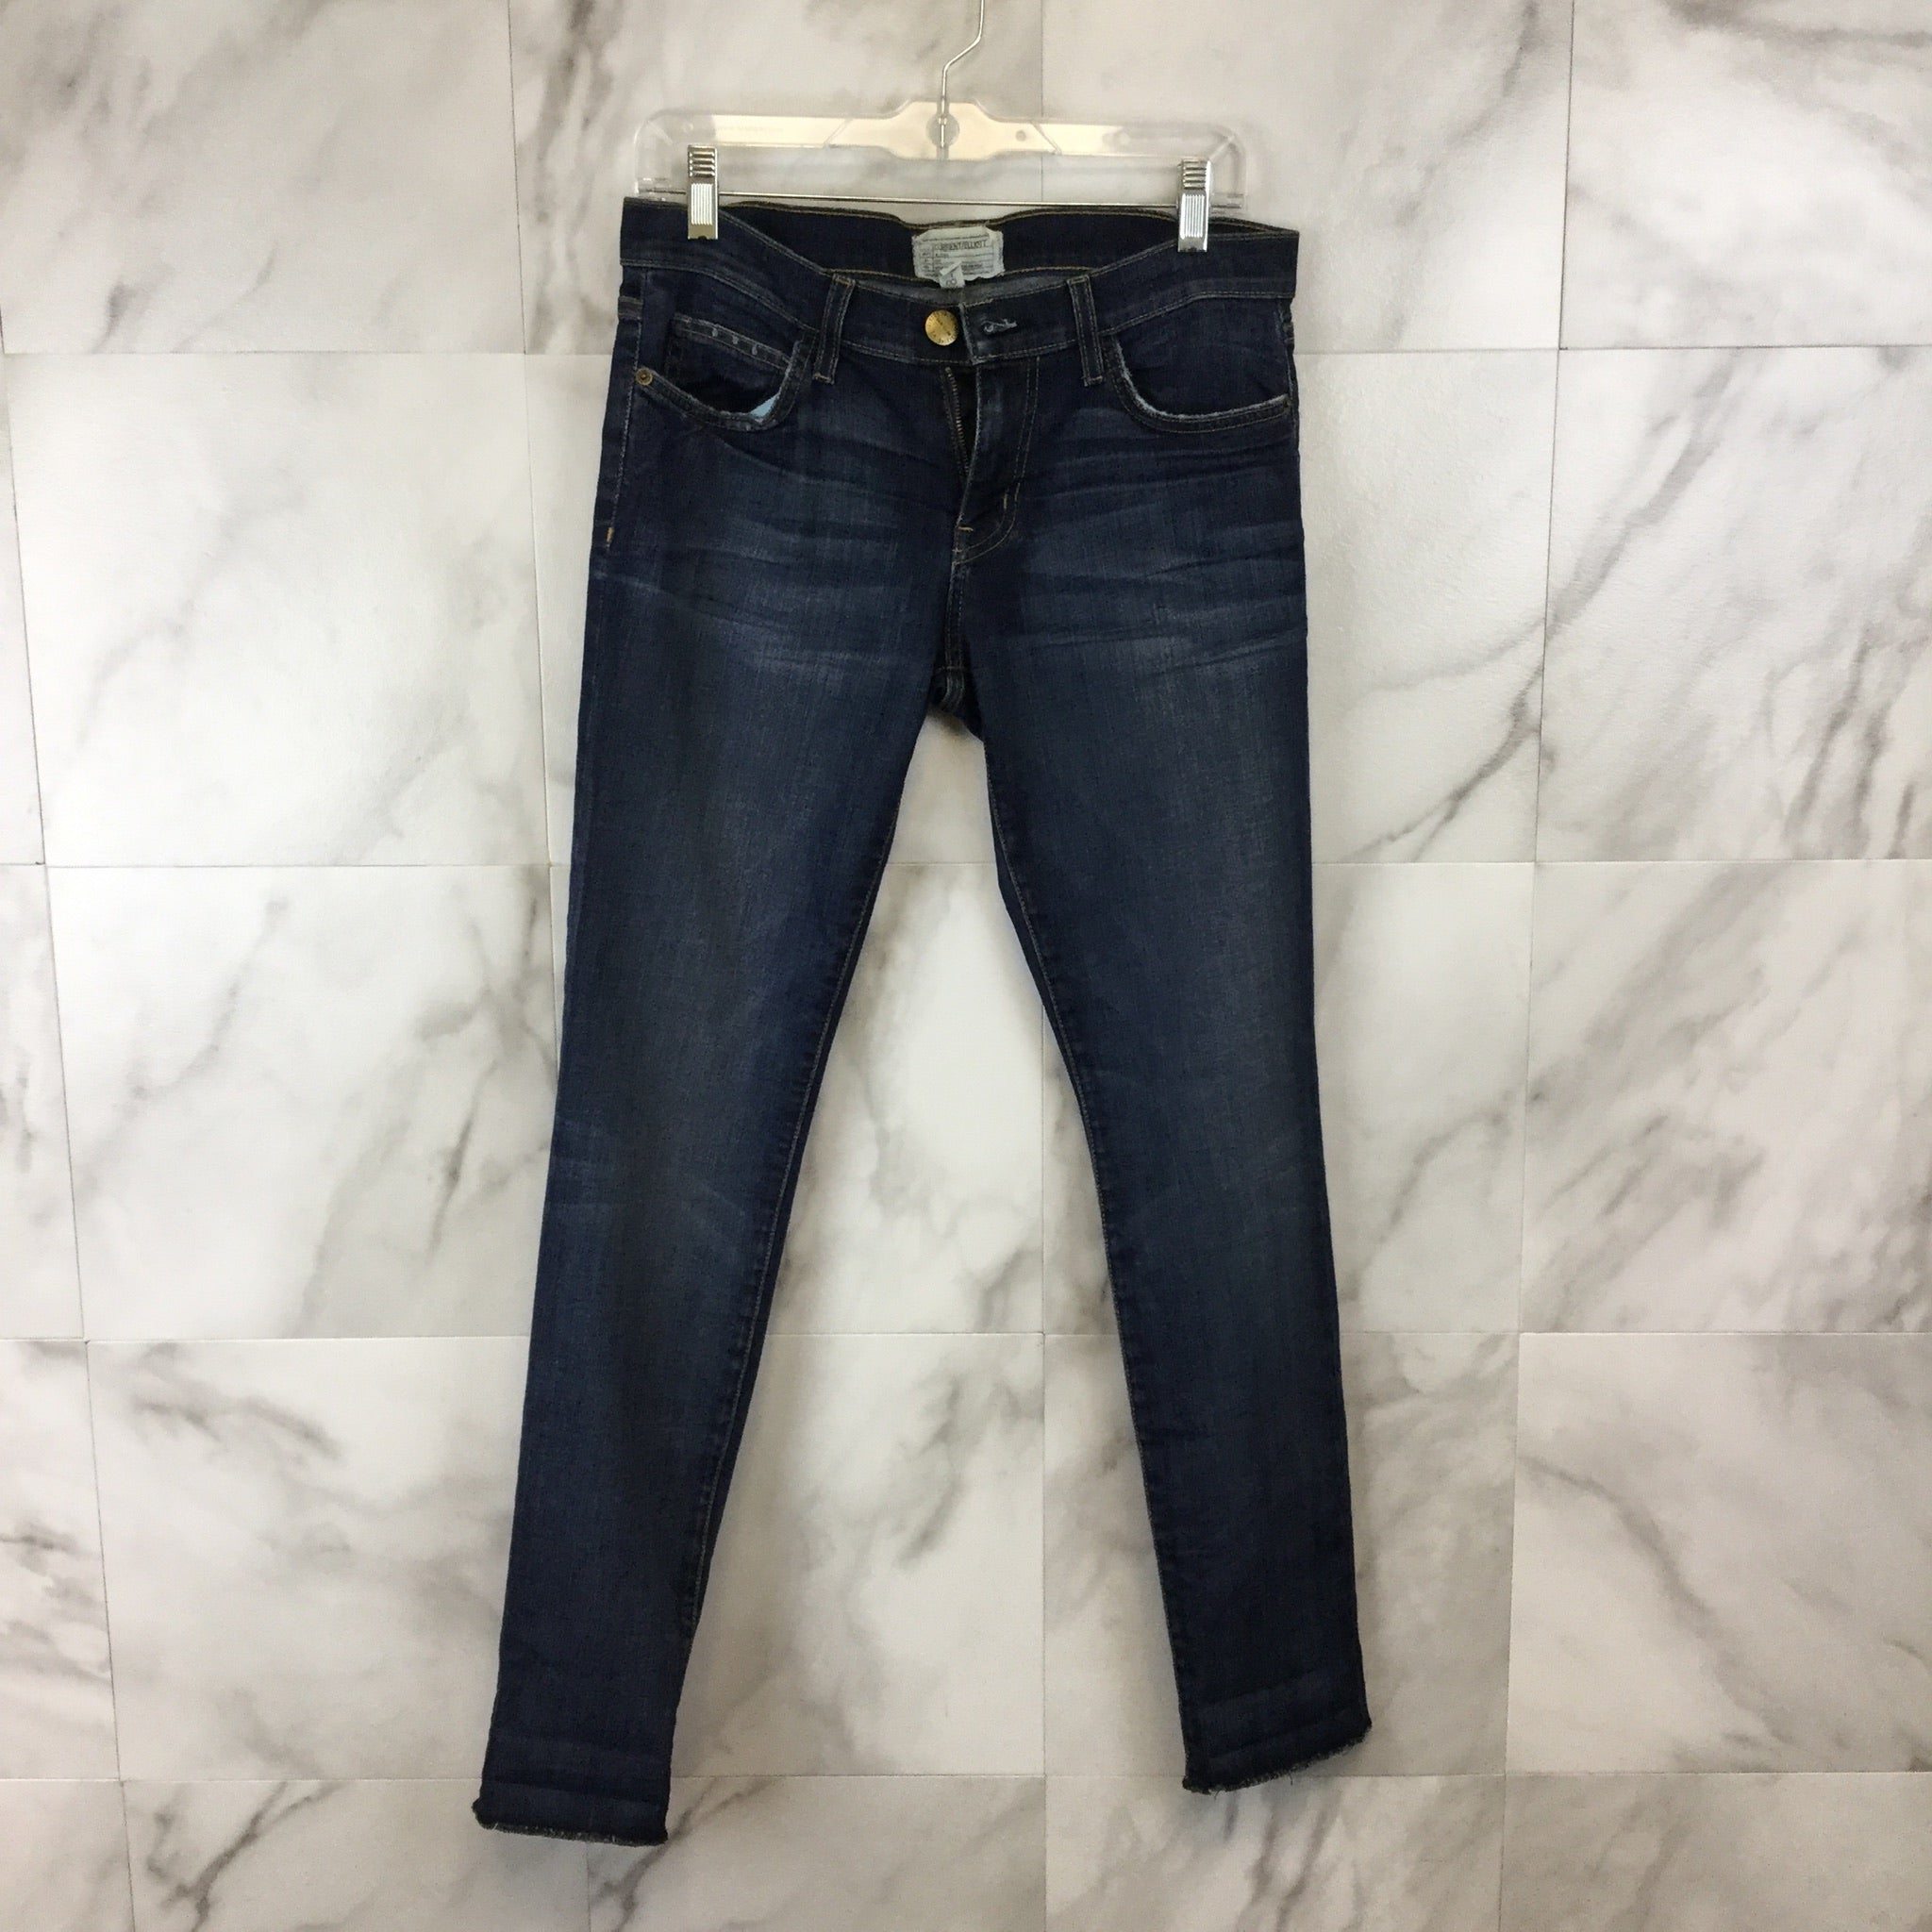 Current/Elliott Skinny Jeans - Size 28